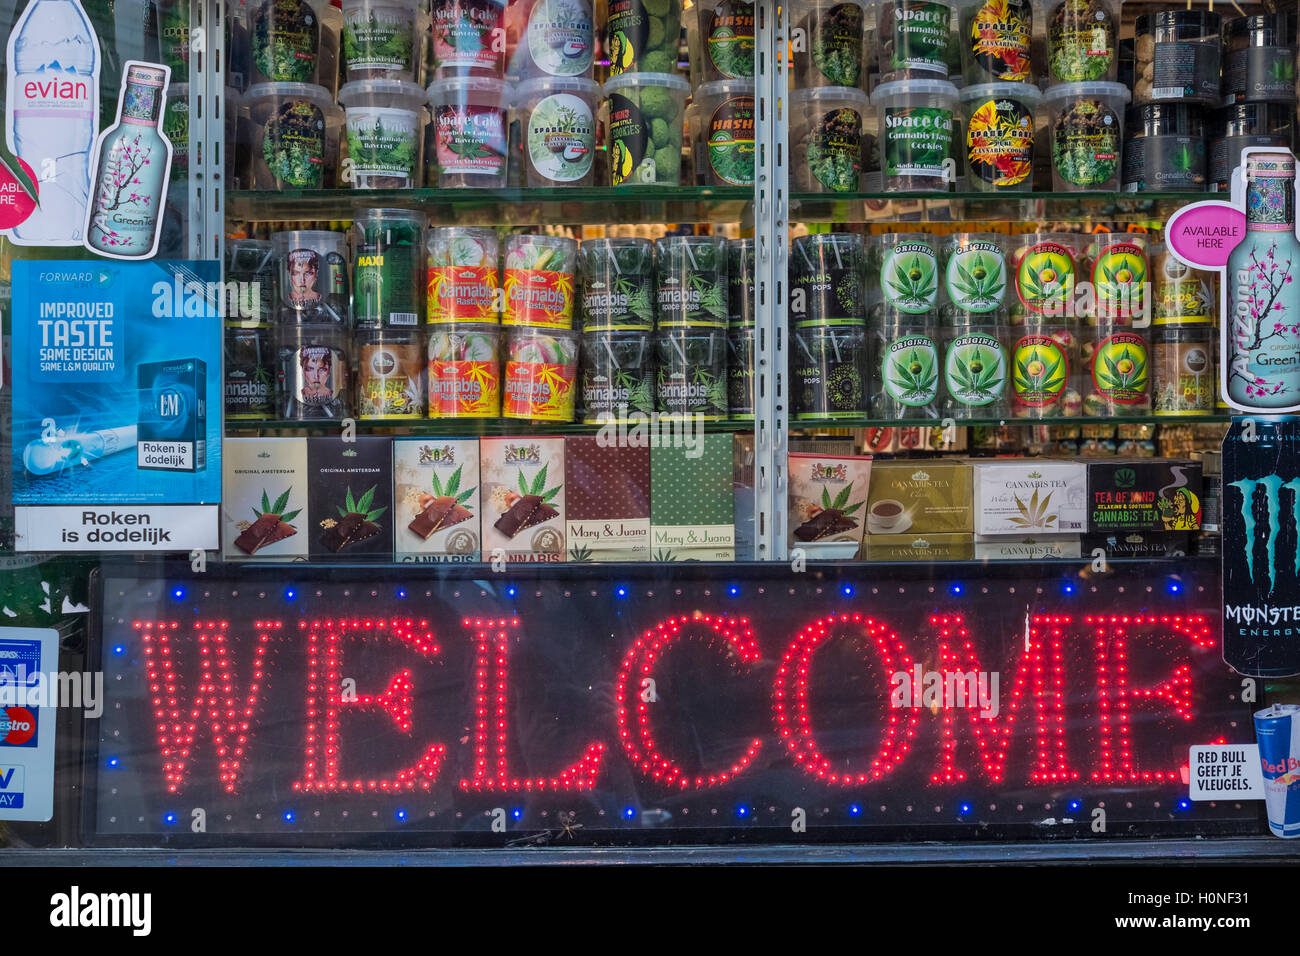 Cannabis products displayed in a retail store window, Amsterdam, Netherlands Stock Photo